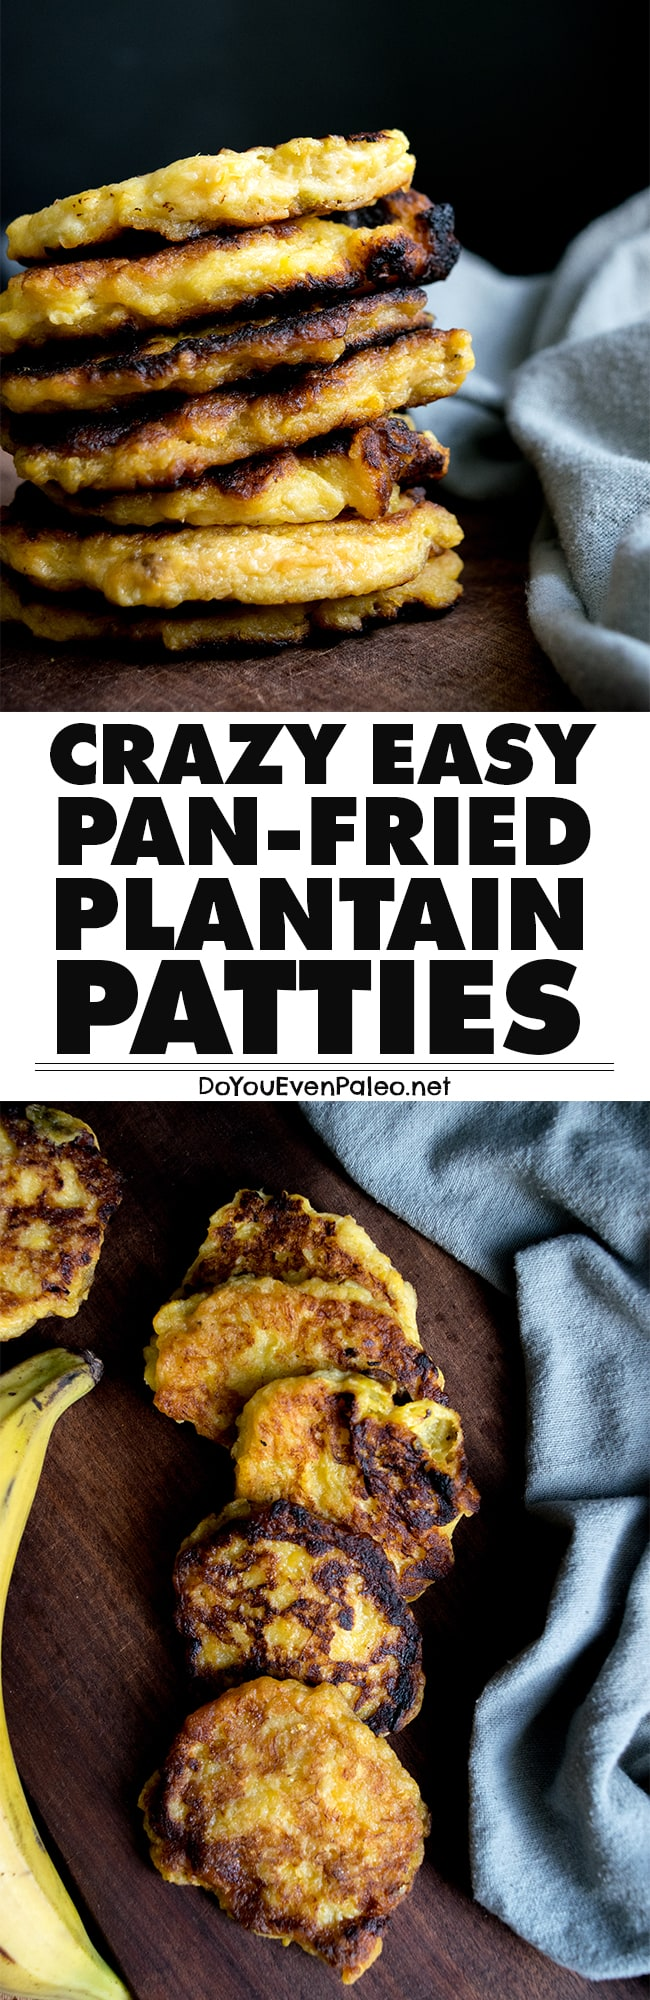 Crazy Easy Plantain Patties Recipe Pin | DoYouEvenPaleo.net